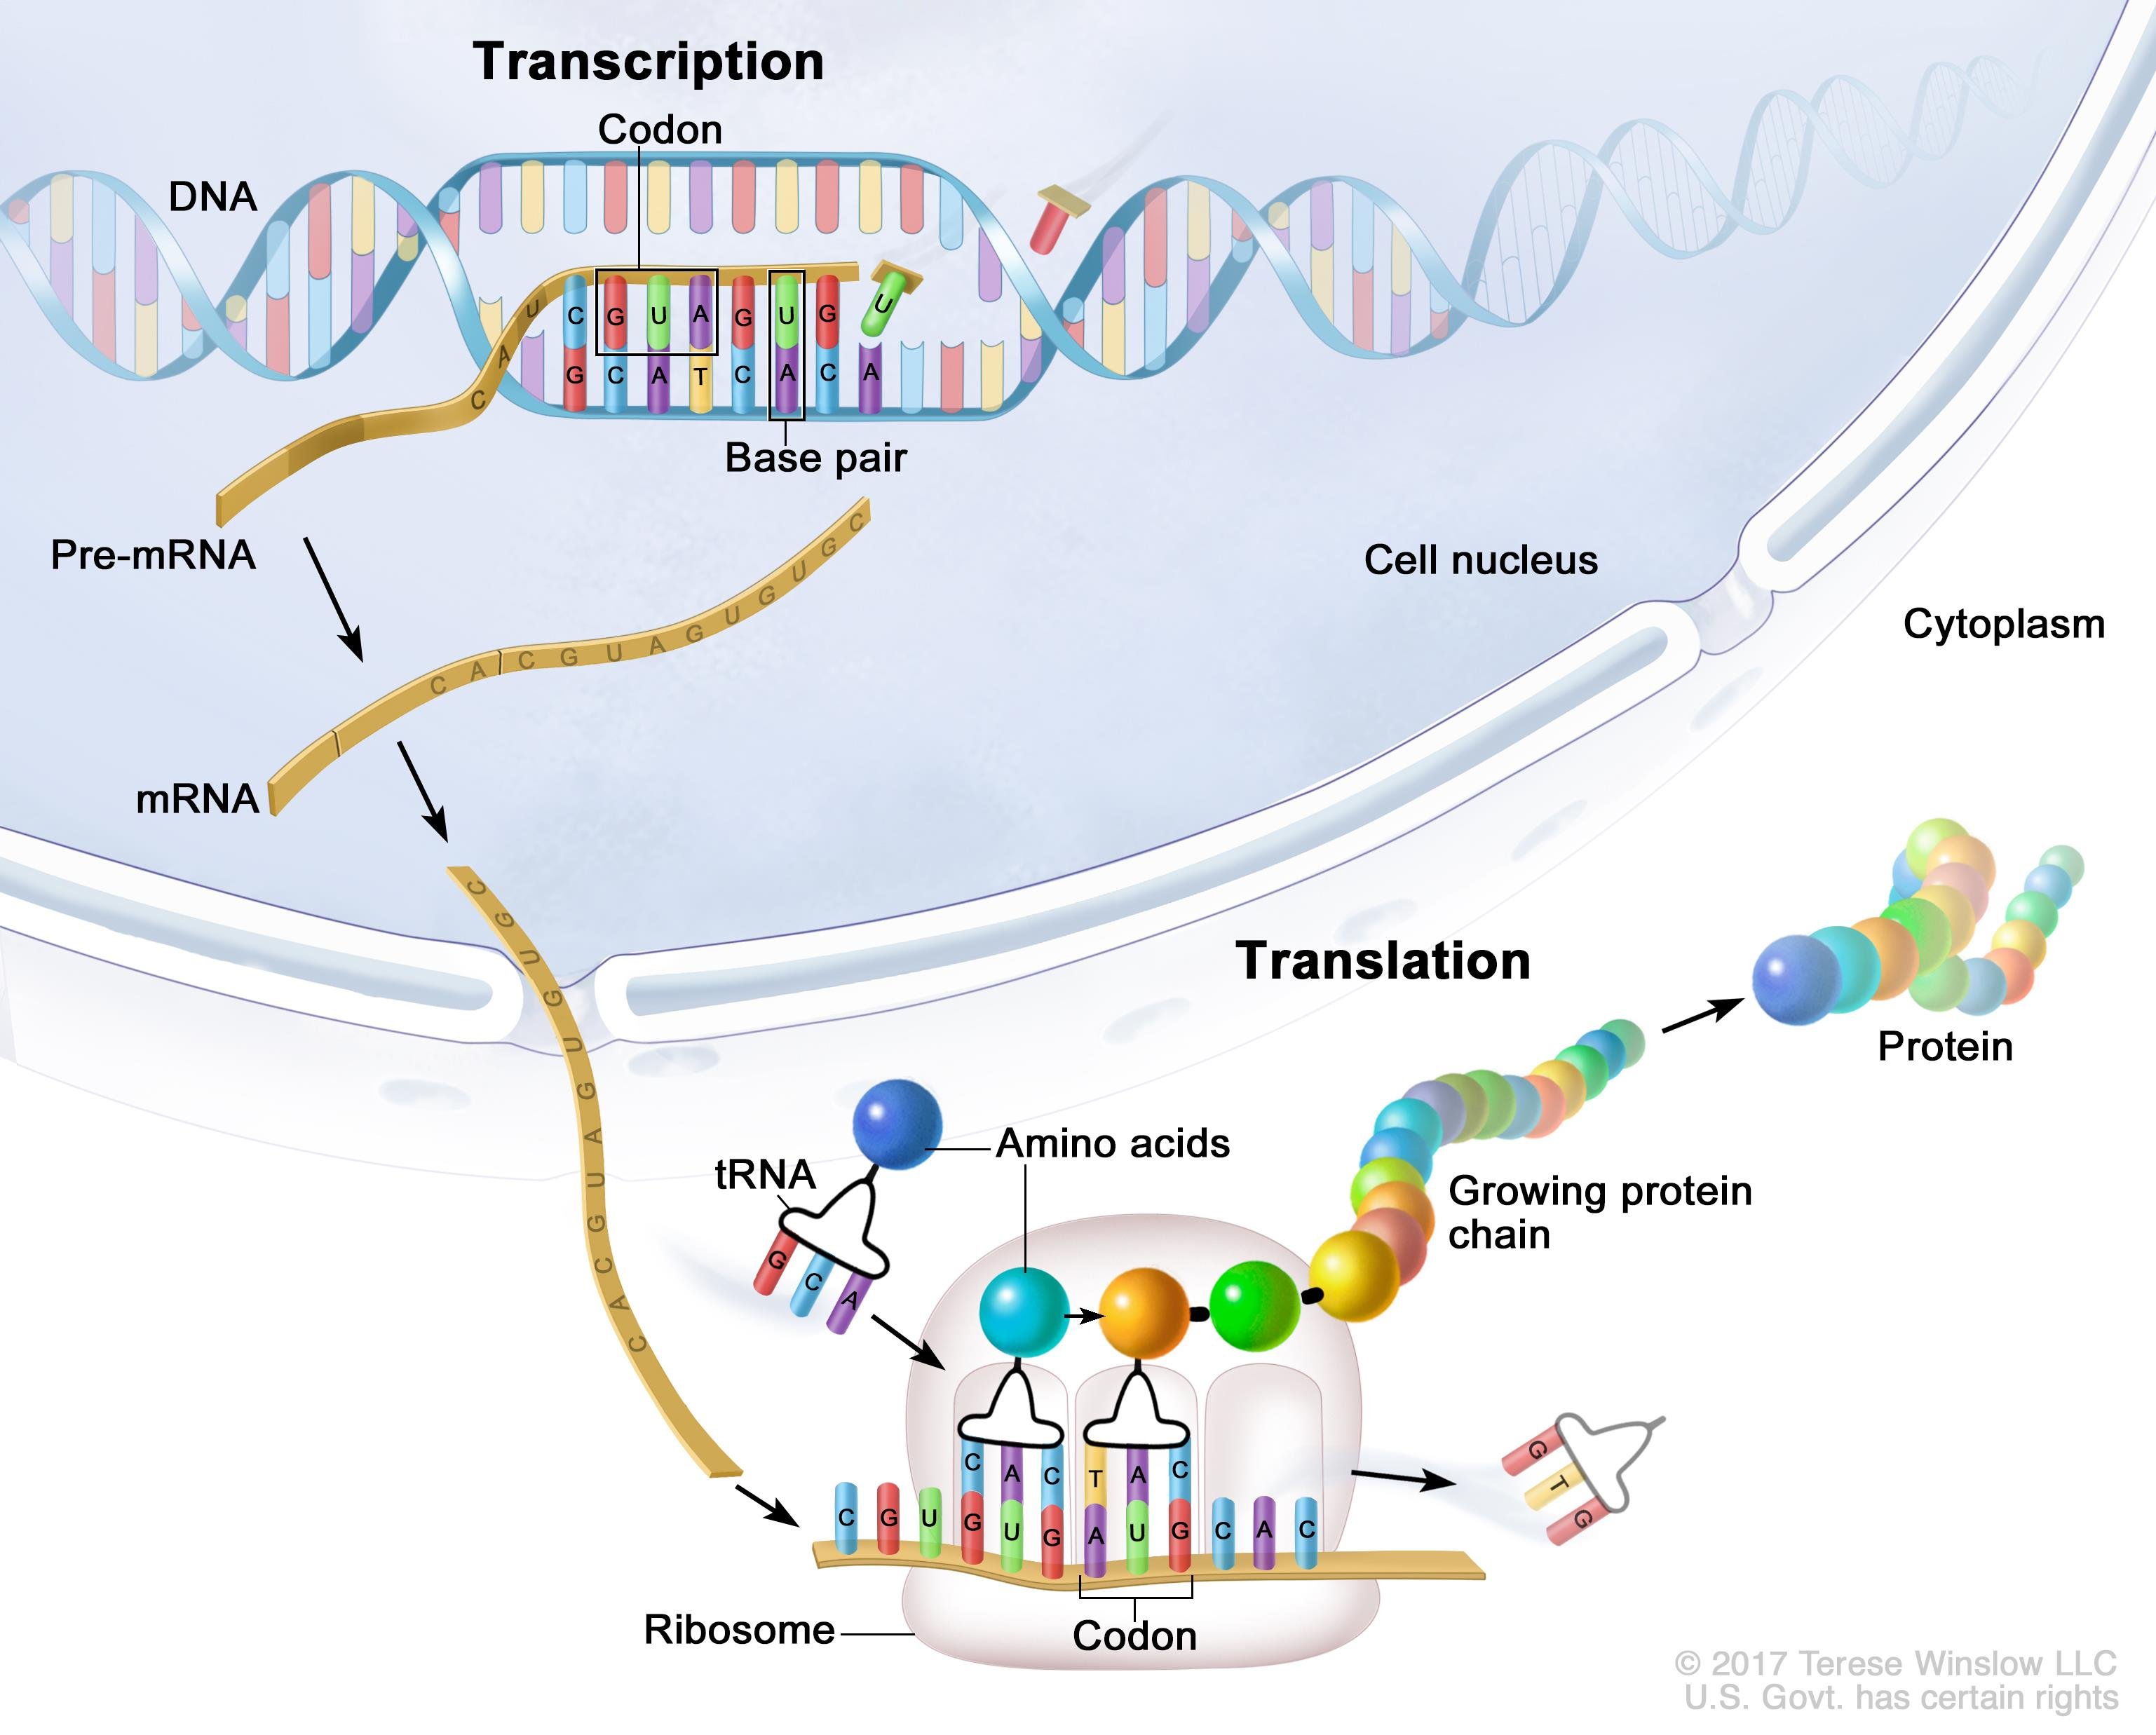 Transcription and translation; the top part of the drawing shows transcription occurring in the nucleus of a cell: a piece of DNA that codes for a specific gene is copied into mRNA; bases in the copied DNA, adenine (A), cytosine (C), guanine (G), and thymine (T), form specific pairs with the bases in the mRNA, except adenine (A) in the DNA pairs with uracil (U) in the mRNA (also shown is a sequence of 3 bases called a codon in the mRNA); the mRNA then carries the genetic information from the DNA to the cytoplasm. The bottom part of the drawing shows translation occurring in the cytoplasm of a cell: the mRNA attaches to and passes through the ribosome; tRNA carries an amino acid to the ribosome, where it binds to a matching codon sequence in the mRNA; the amino acid joins with the other amino acids to form a growing protein chain; the completed protein is then released from the ribosome.